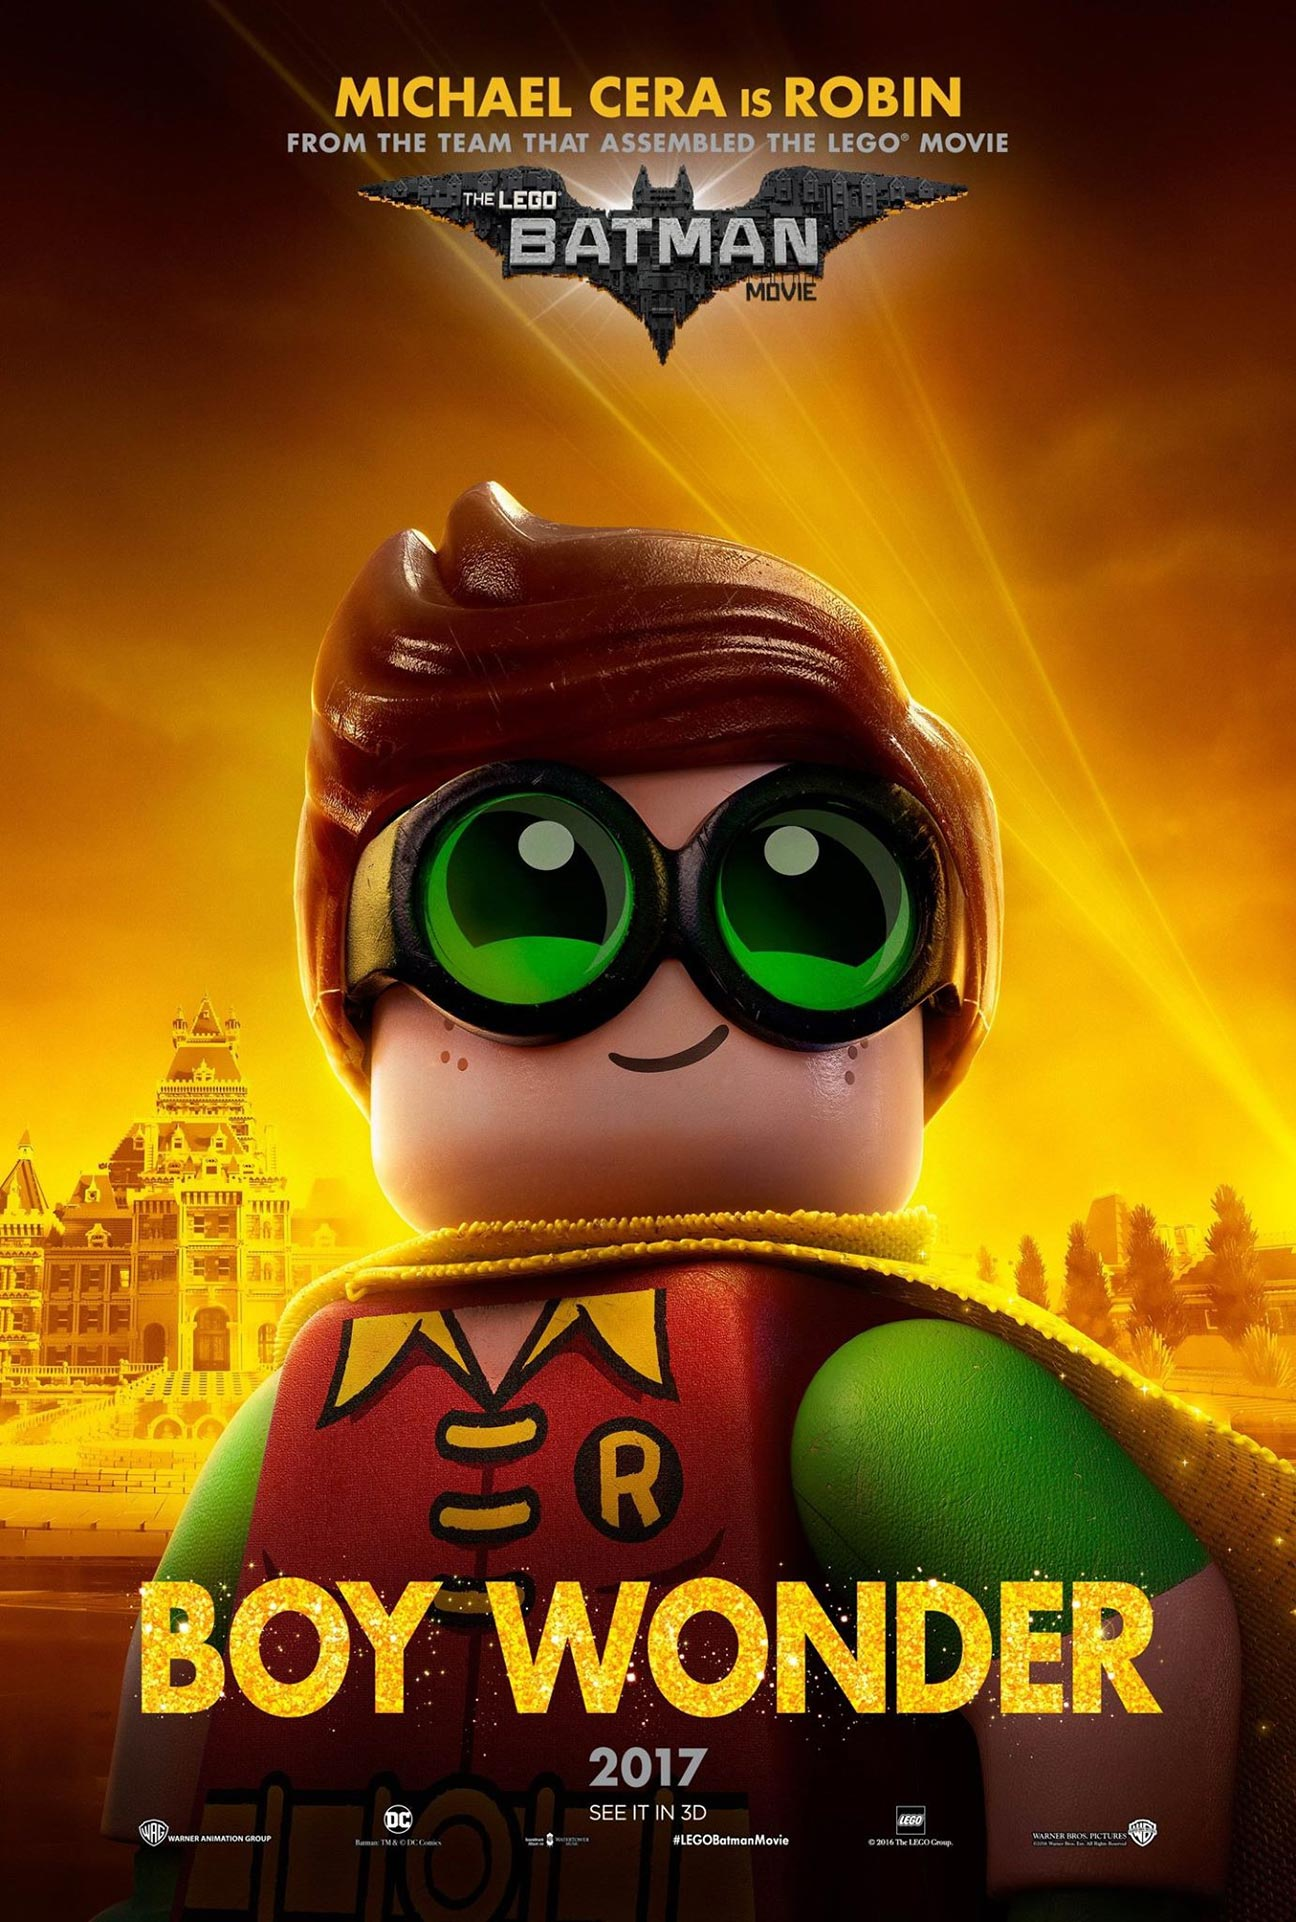 The Lego Batman Movie Poster #7